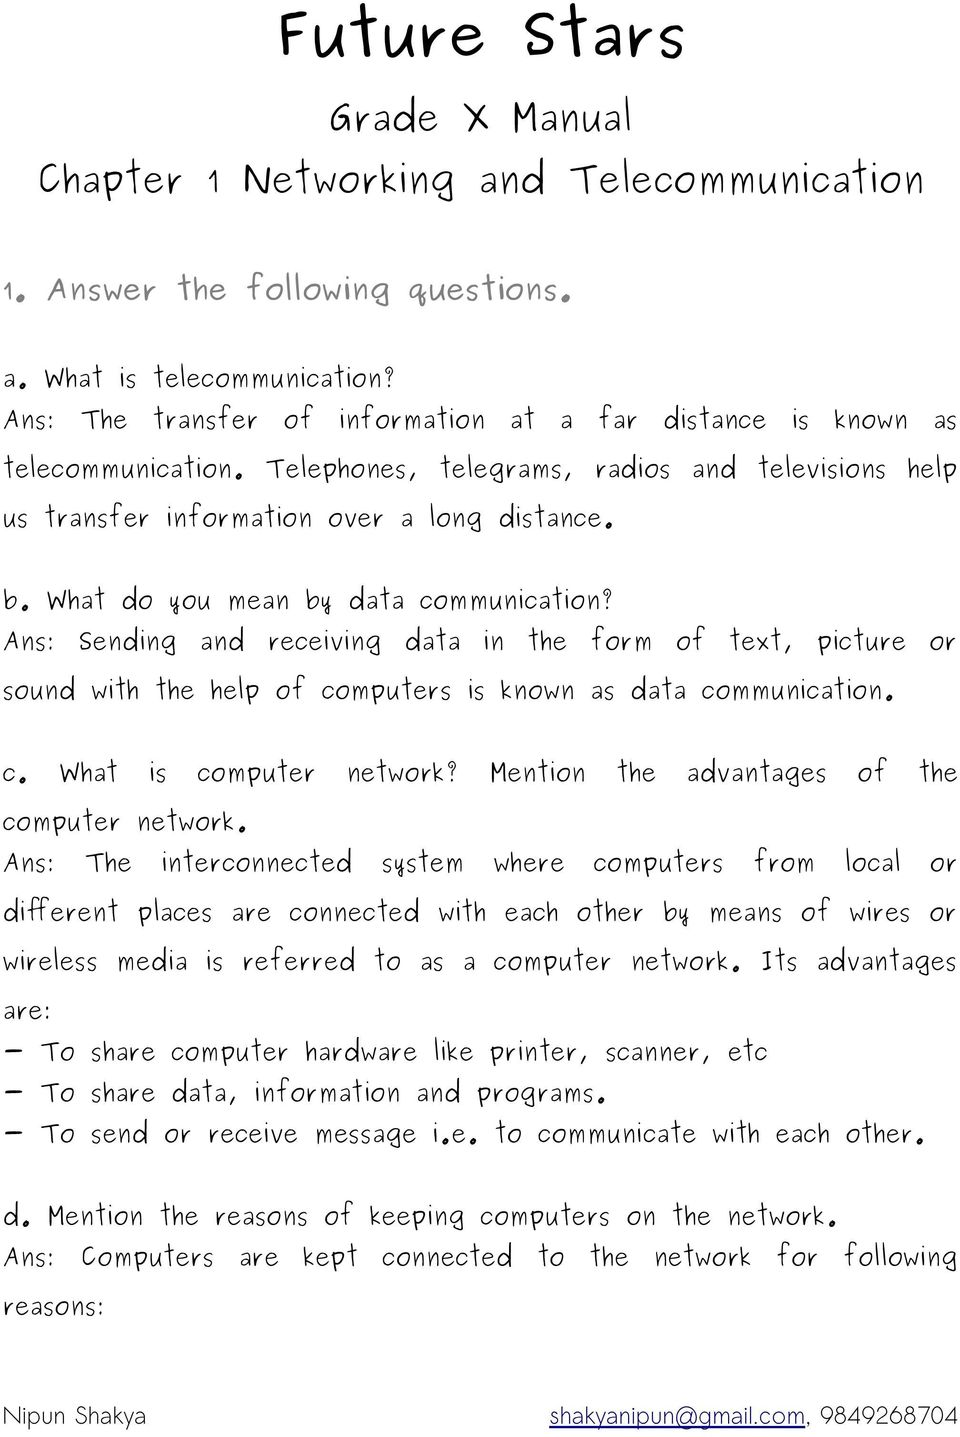 What do you mean by data communication? Ans: Sending and receiving data in the form of text, picture or sound with the help of computers is known as data communication. c. What is computer network?